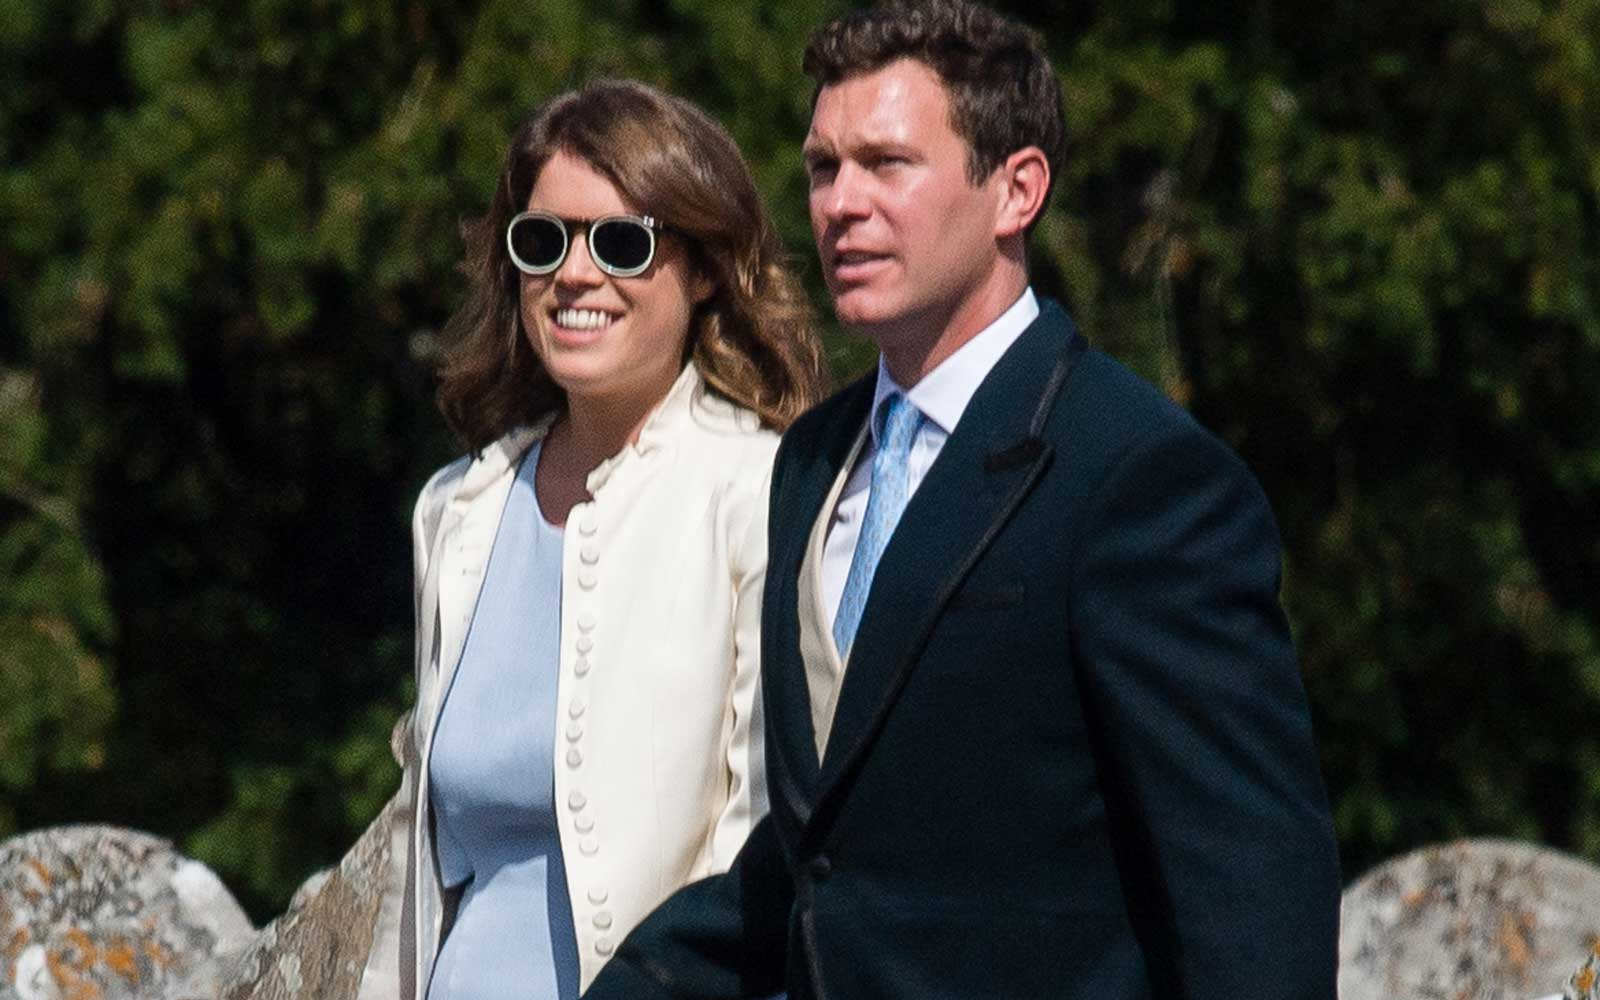 Princess Eugenie and fiance Jack Brooksbank attend the wedding of Charlie Van Straubenzee on August 4, 2018 in Frensham, United Kingdom.